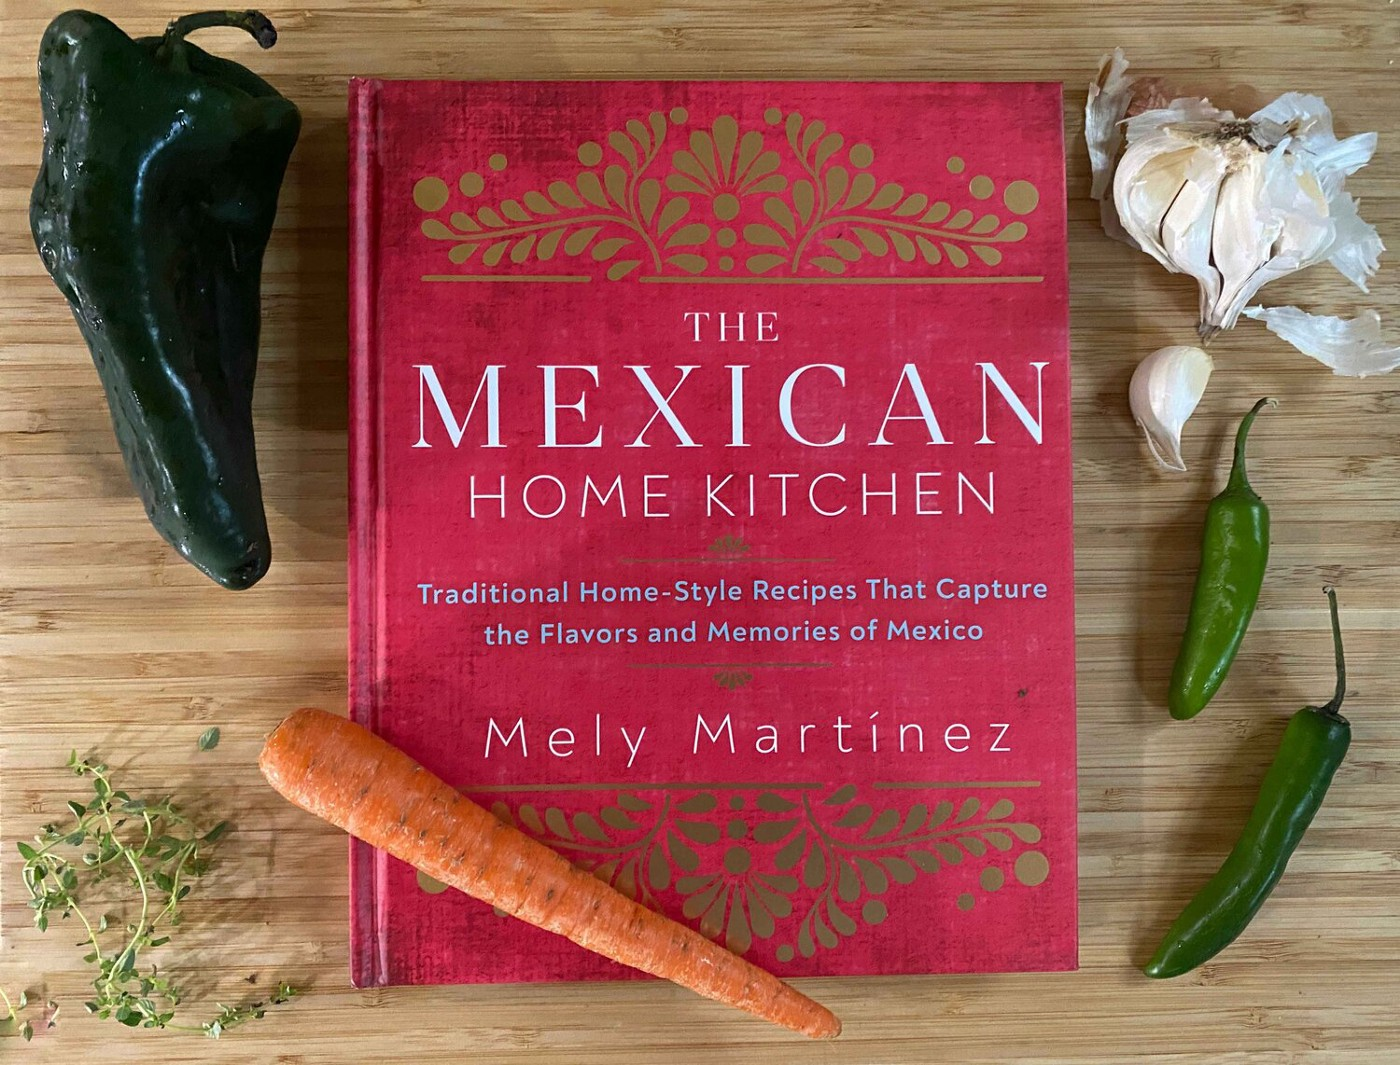 'The Mexican Home Kitchen' cookbook, shown on a bamboo cutting board with fresh chiles, garlic, thyme and a carrot